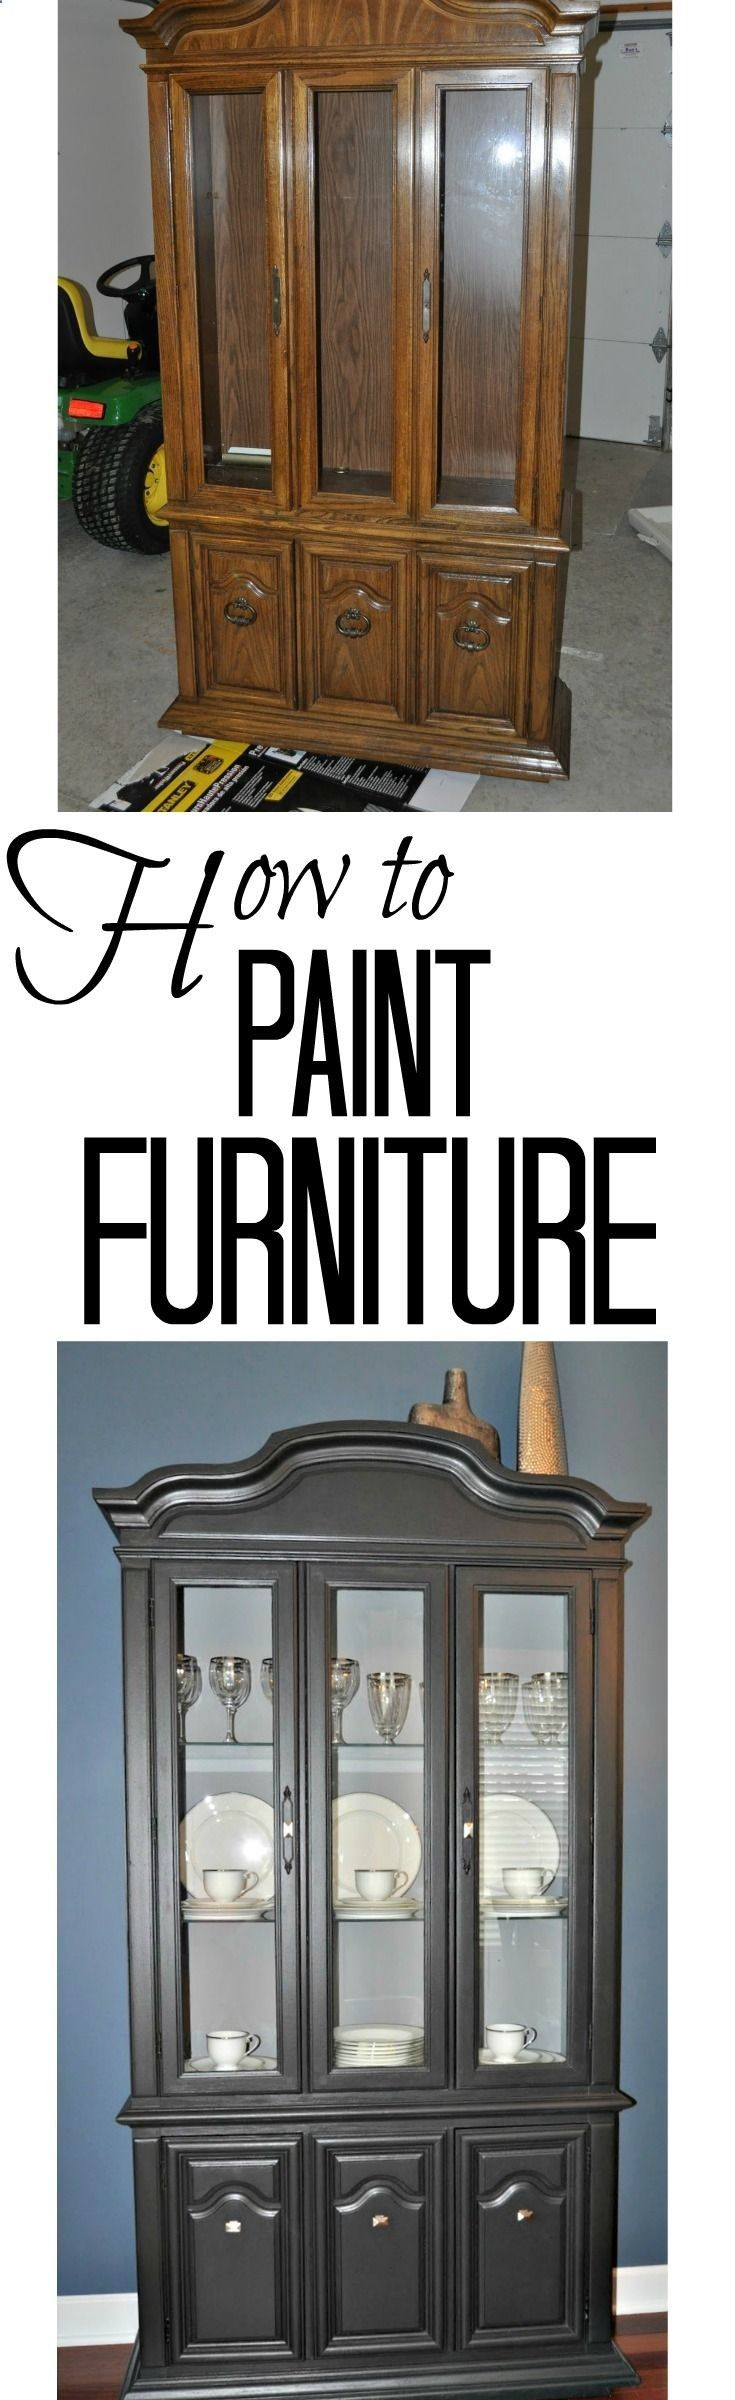 How to Paint Furniture Great tips for